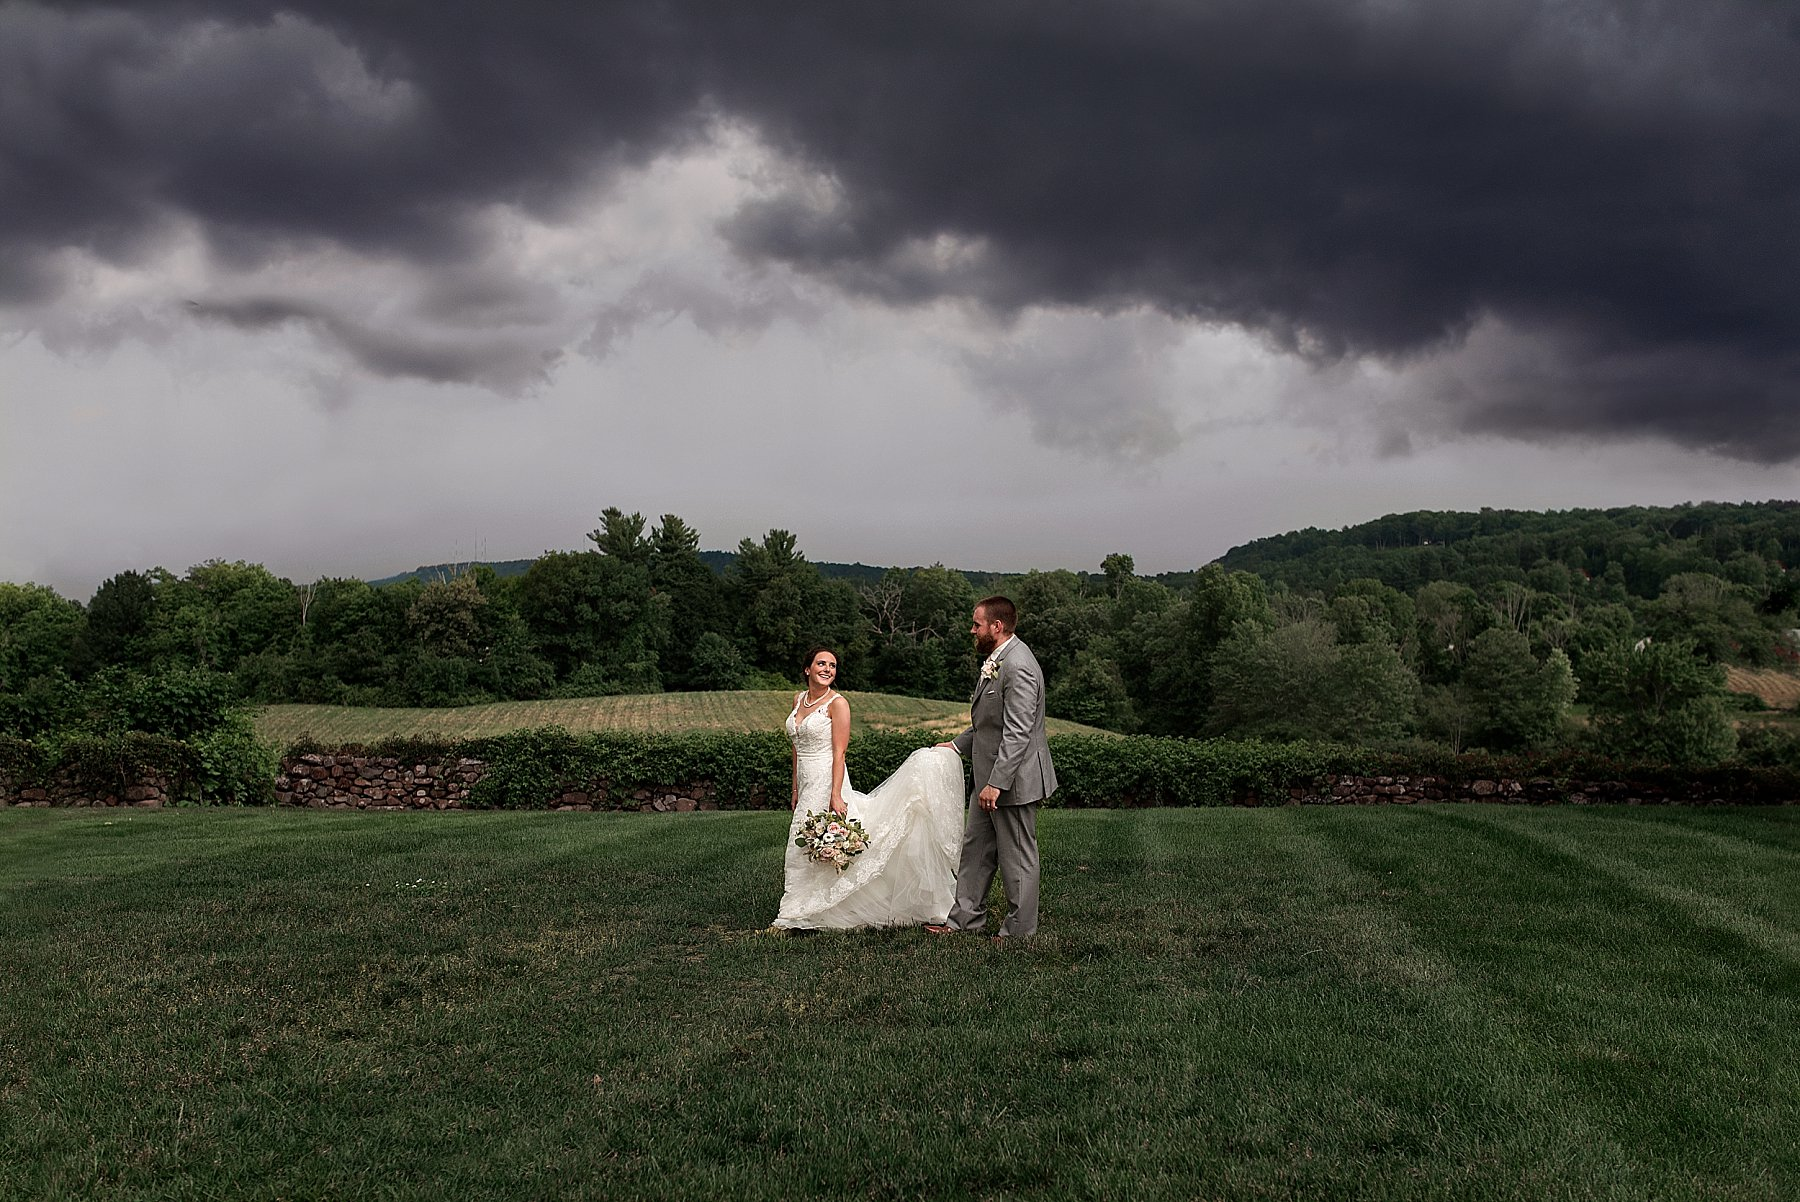 groom holding brides dress during storm on wedding day in CT